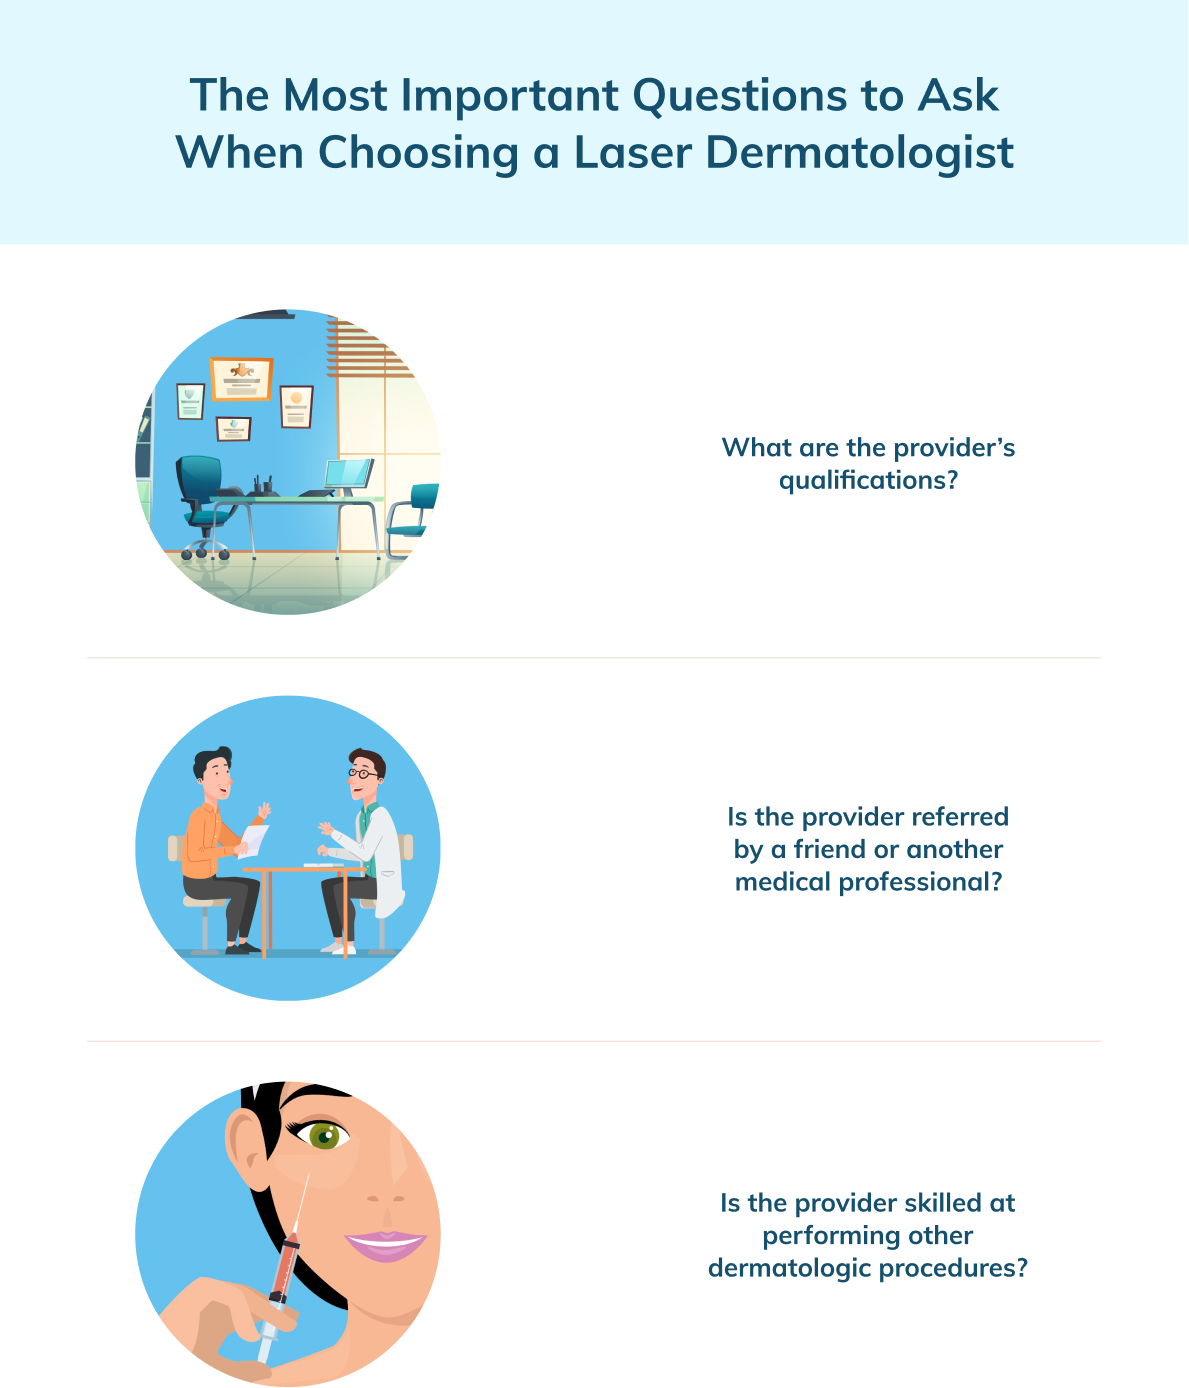 laser dermatology questions to ask